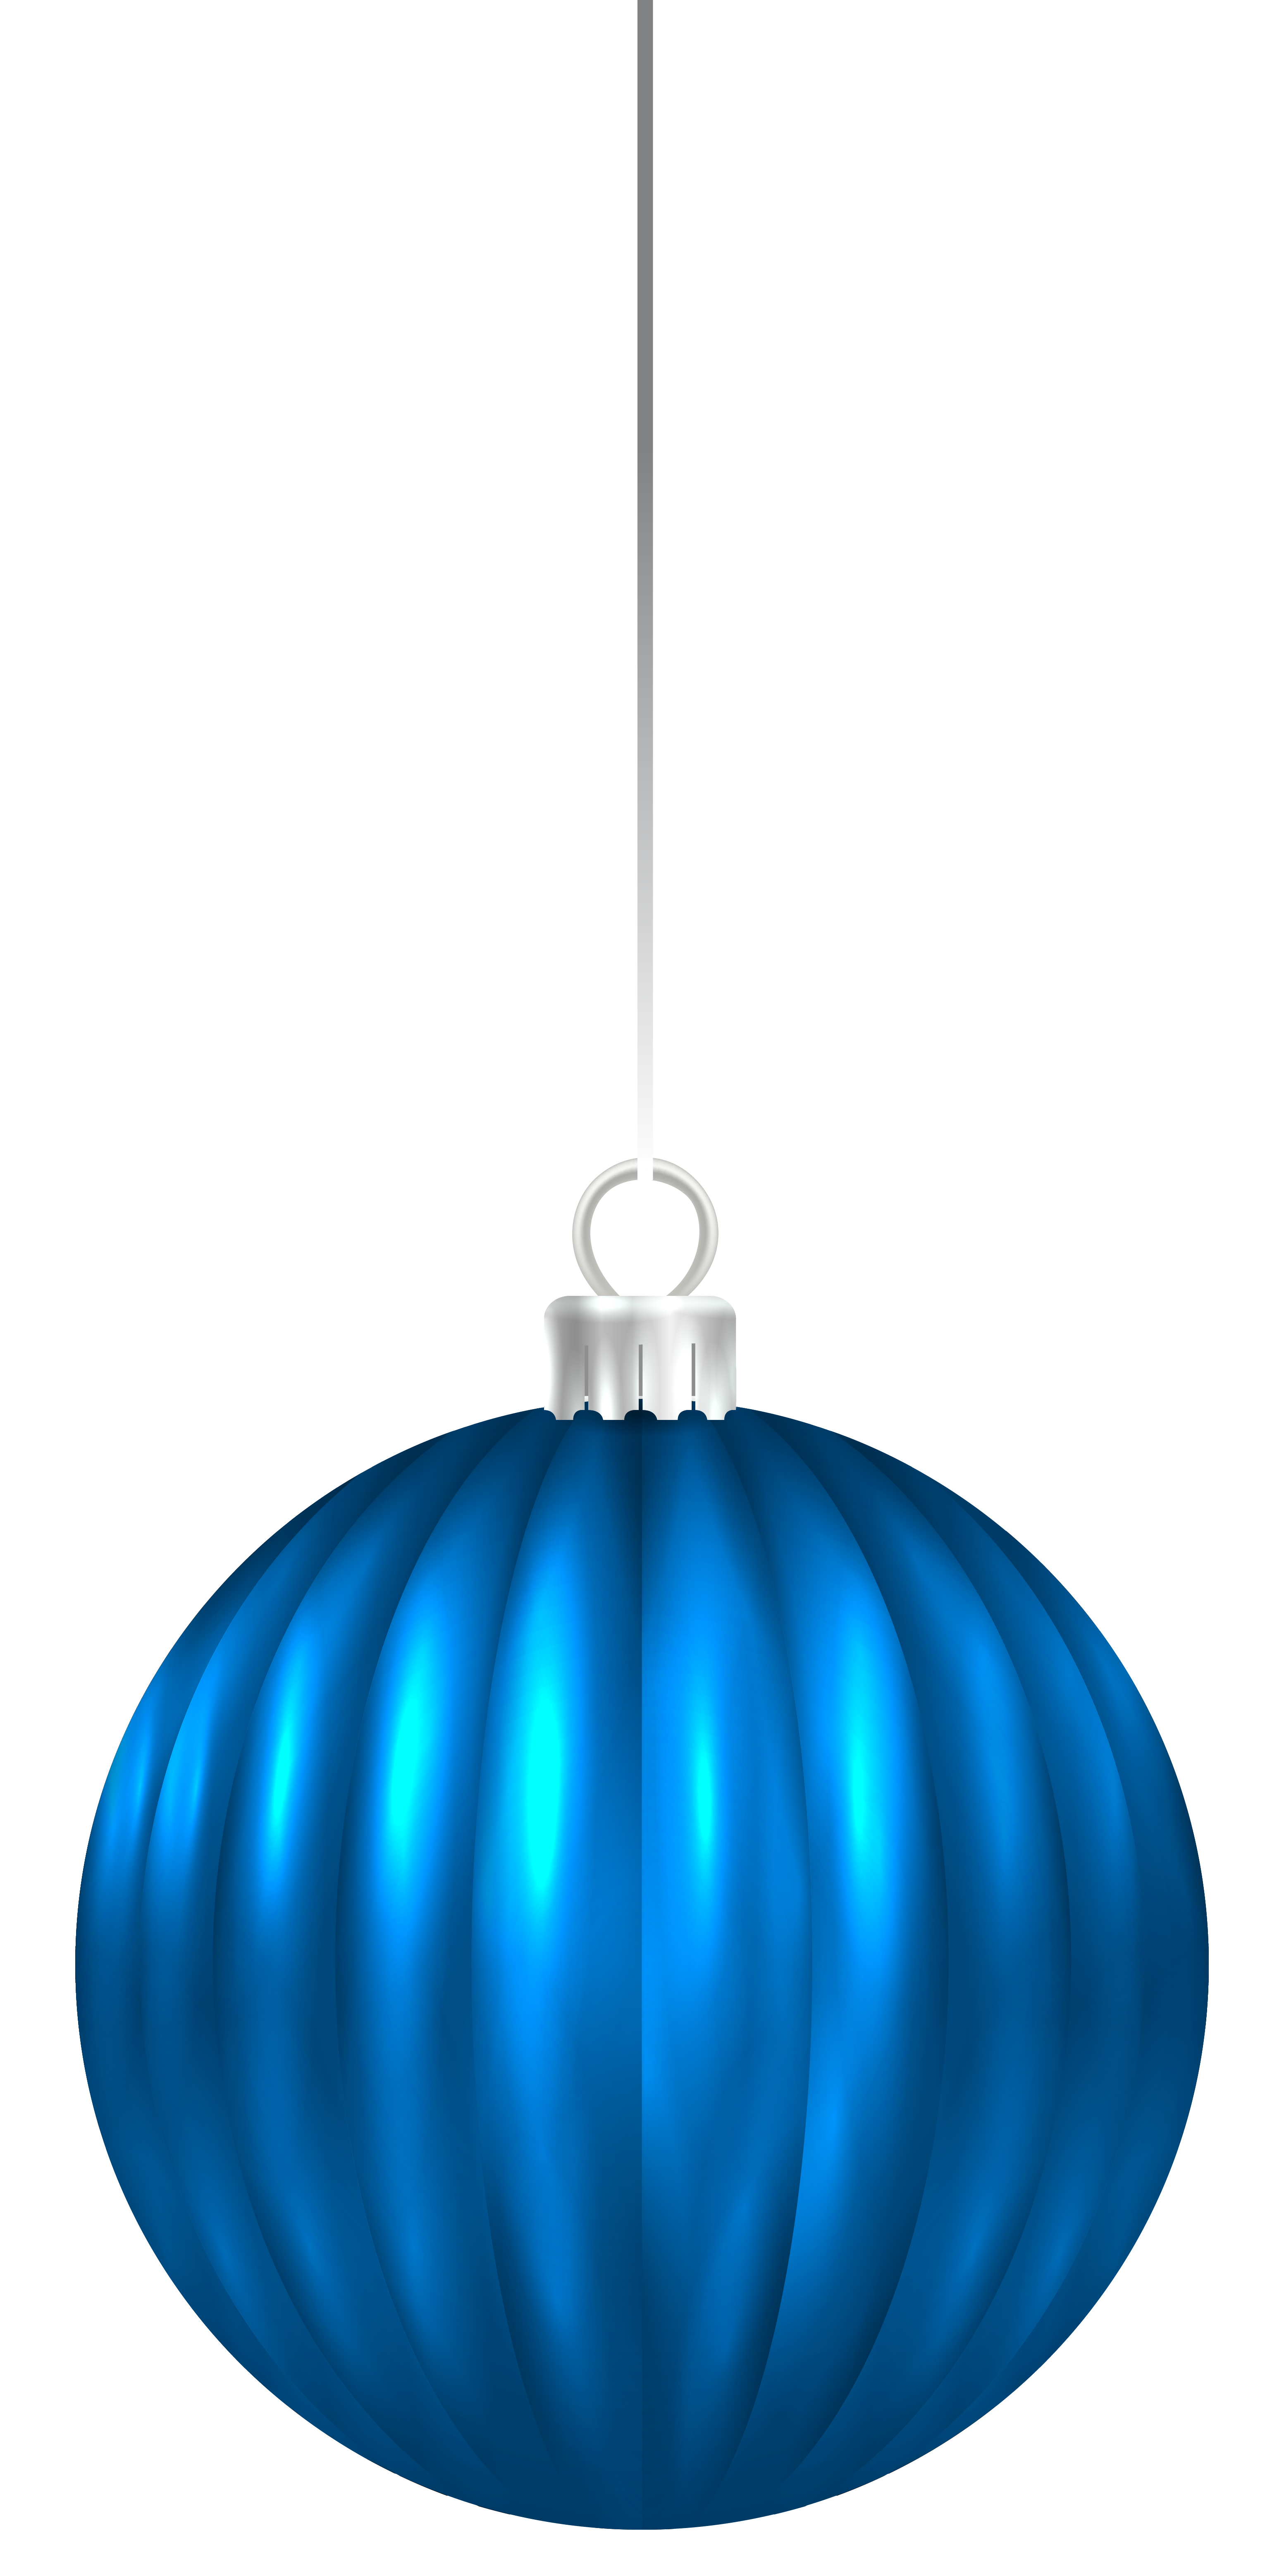 3106x6230 Christmas Ornaments Clipart Blue Christmas